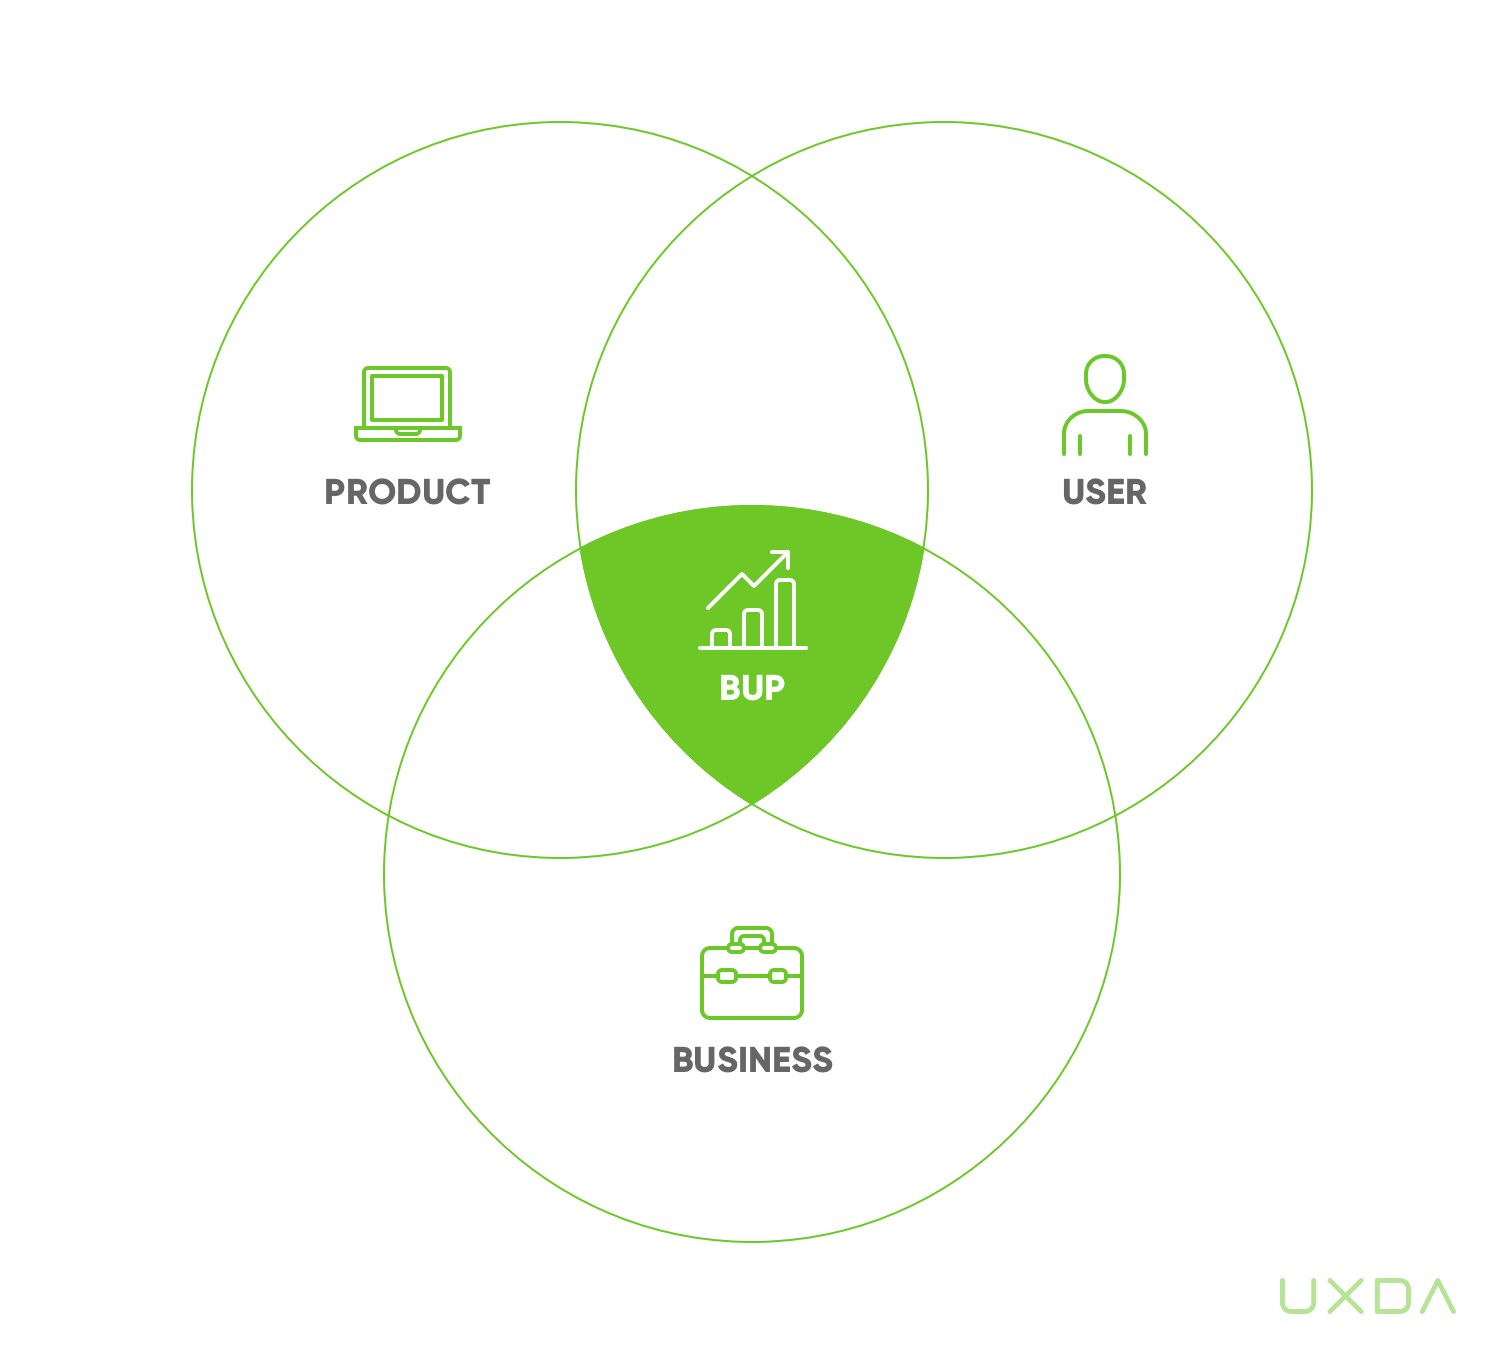 5-financial-ux-design-process-bup-frame-by-uxda.jpg